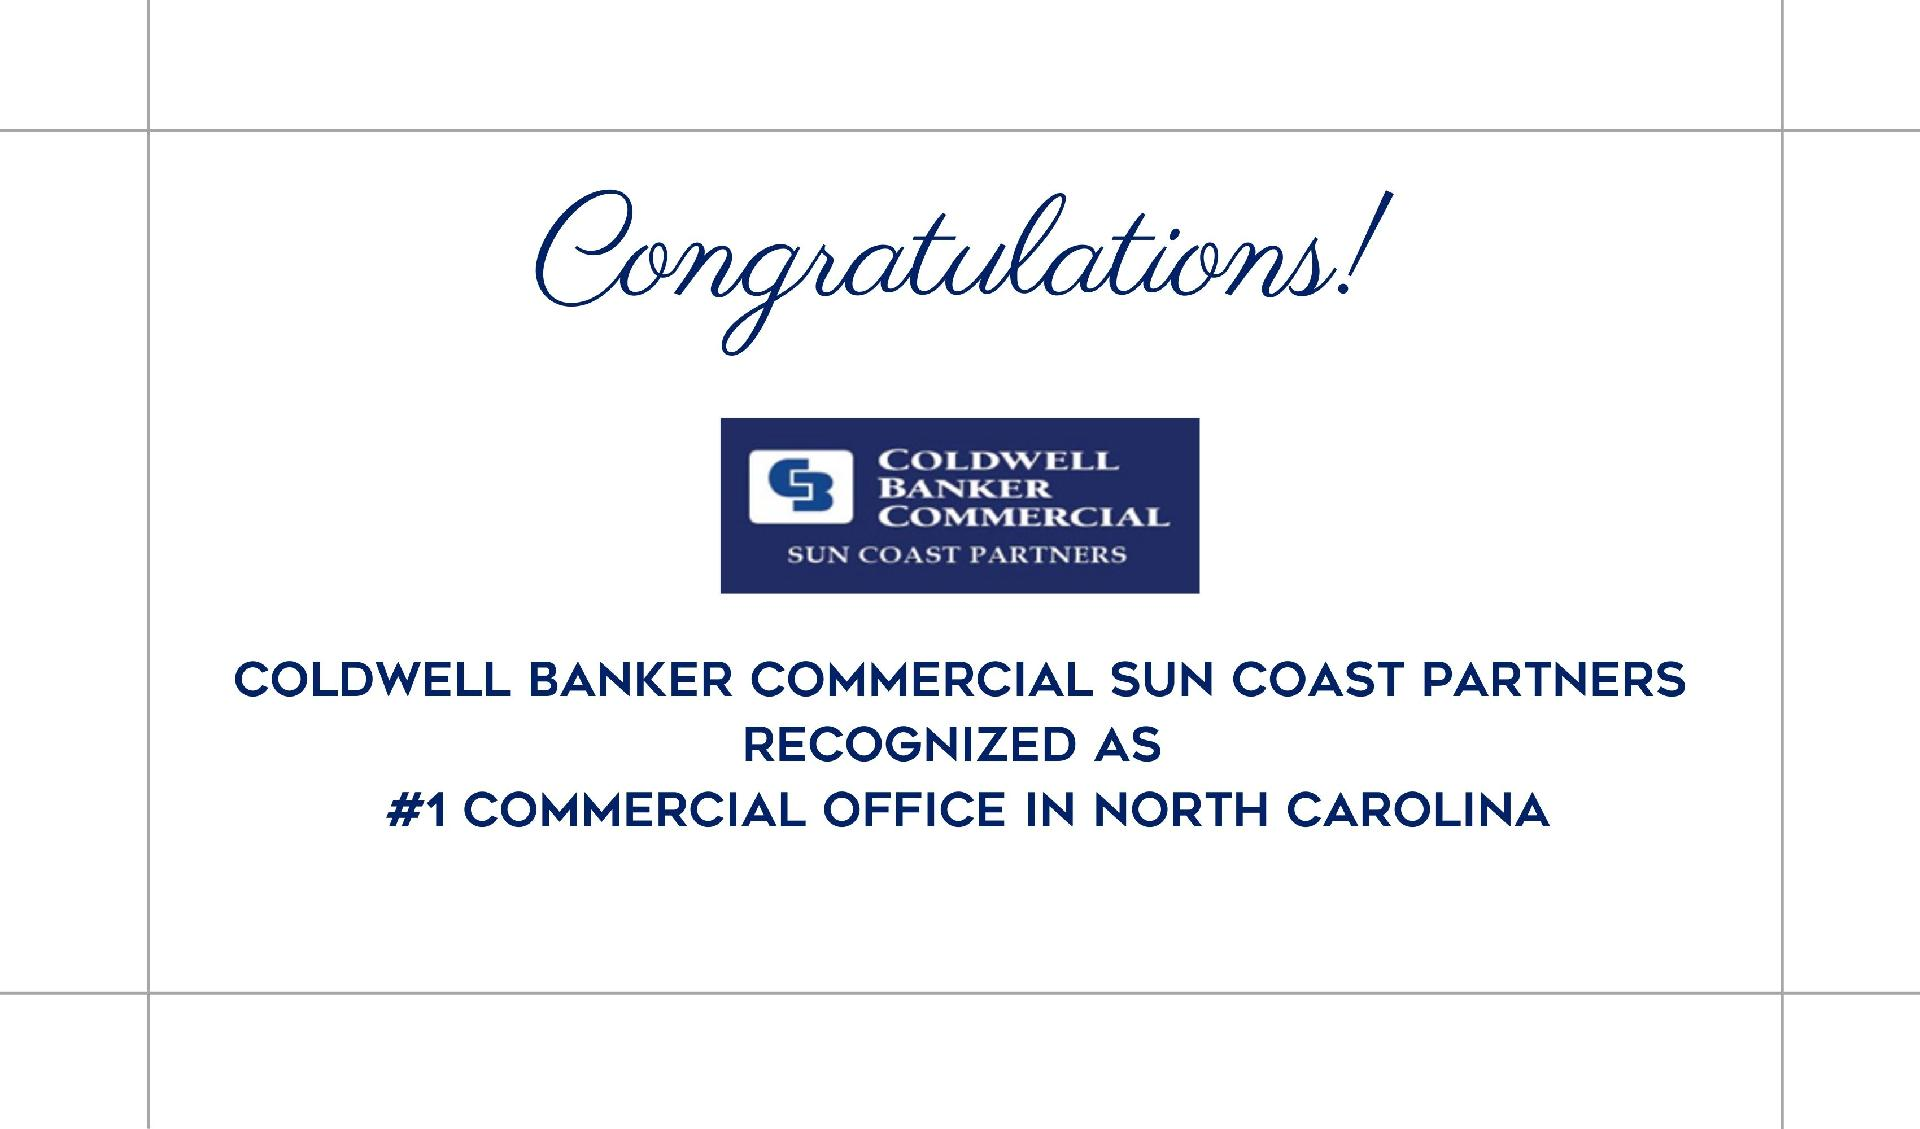 Coldwell Banker Commercial Sun Coast Partners Recognized as #1 Commercial Office in North Carolina! Main Photo